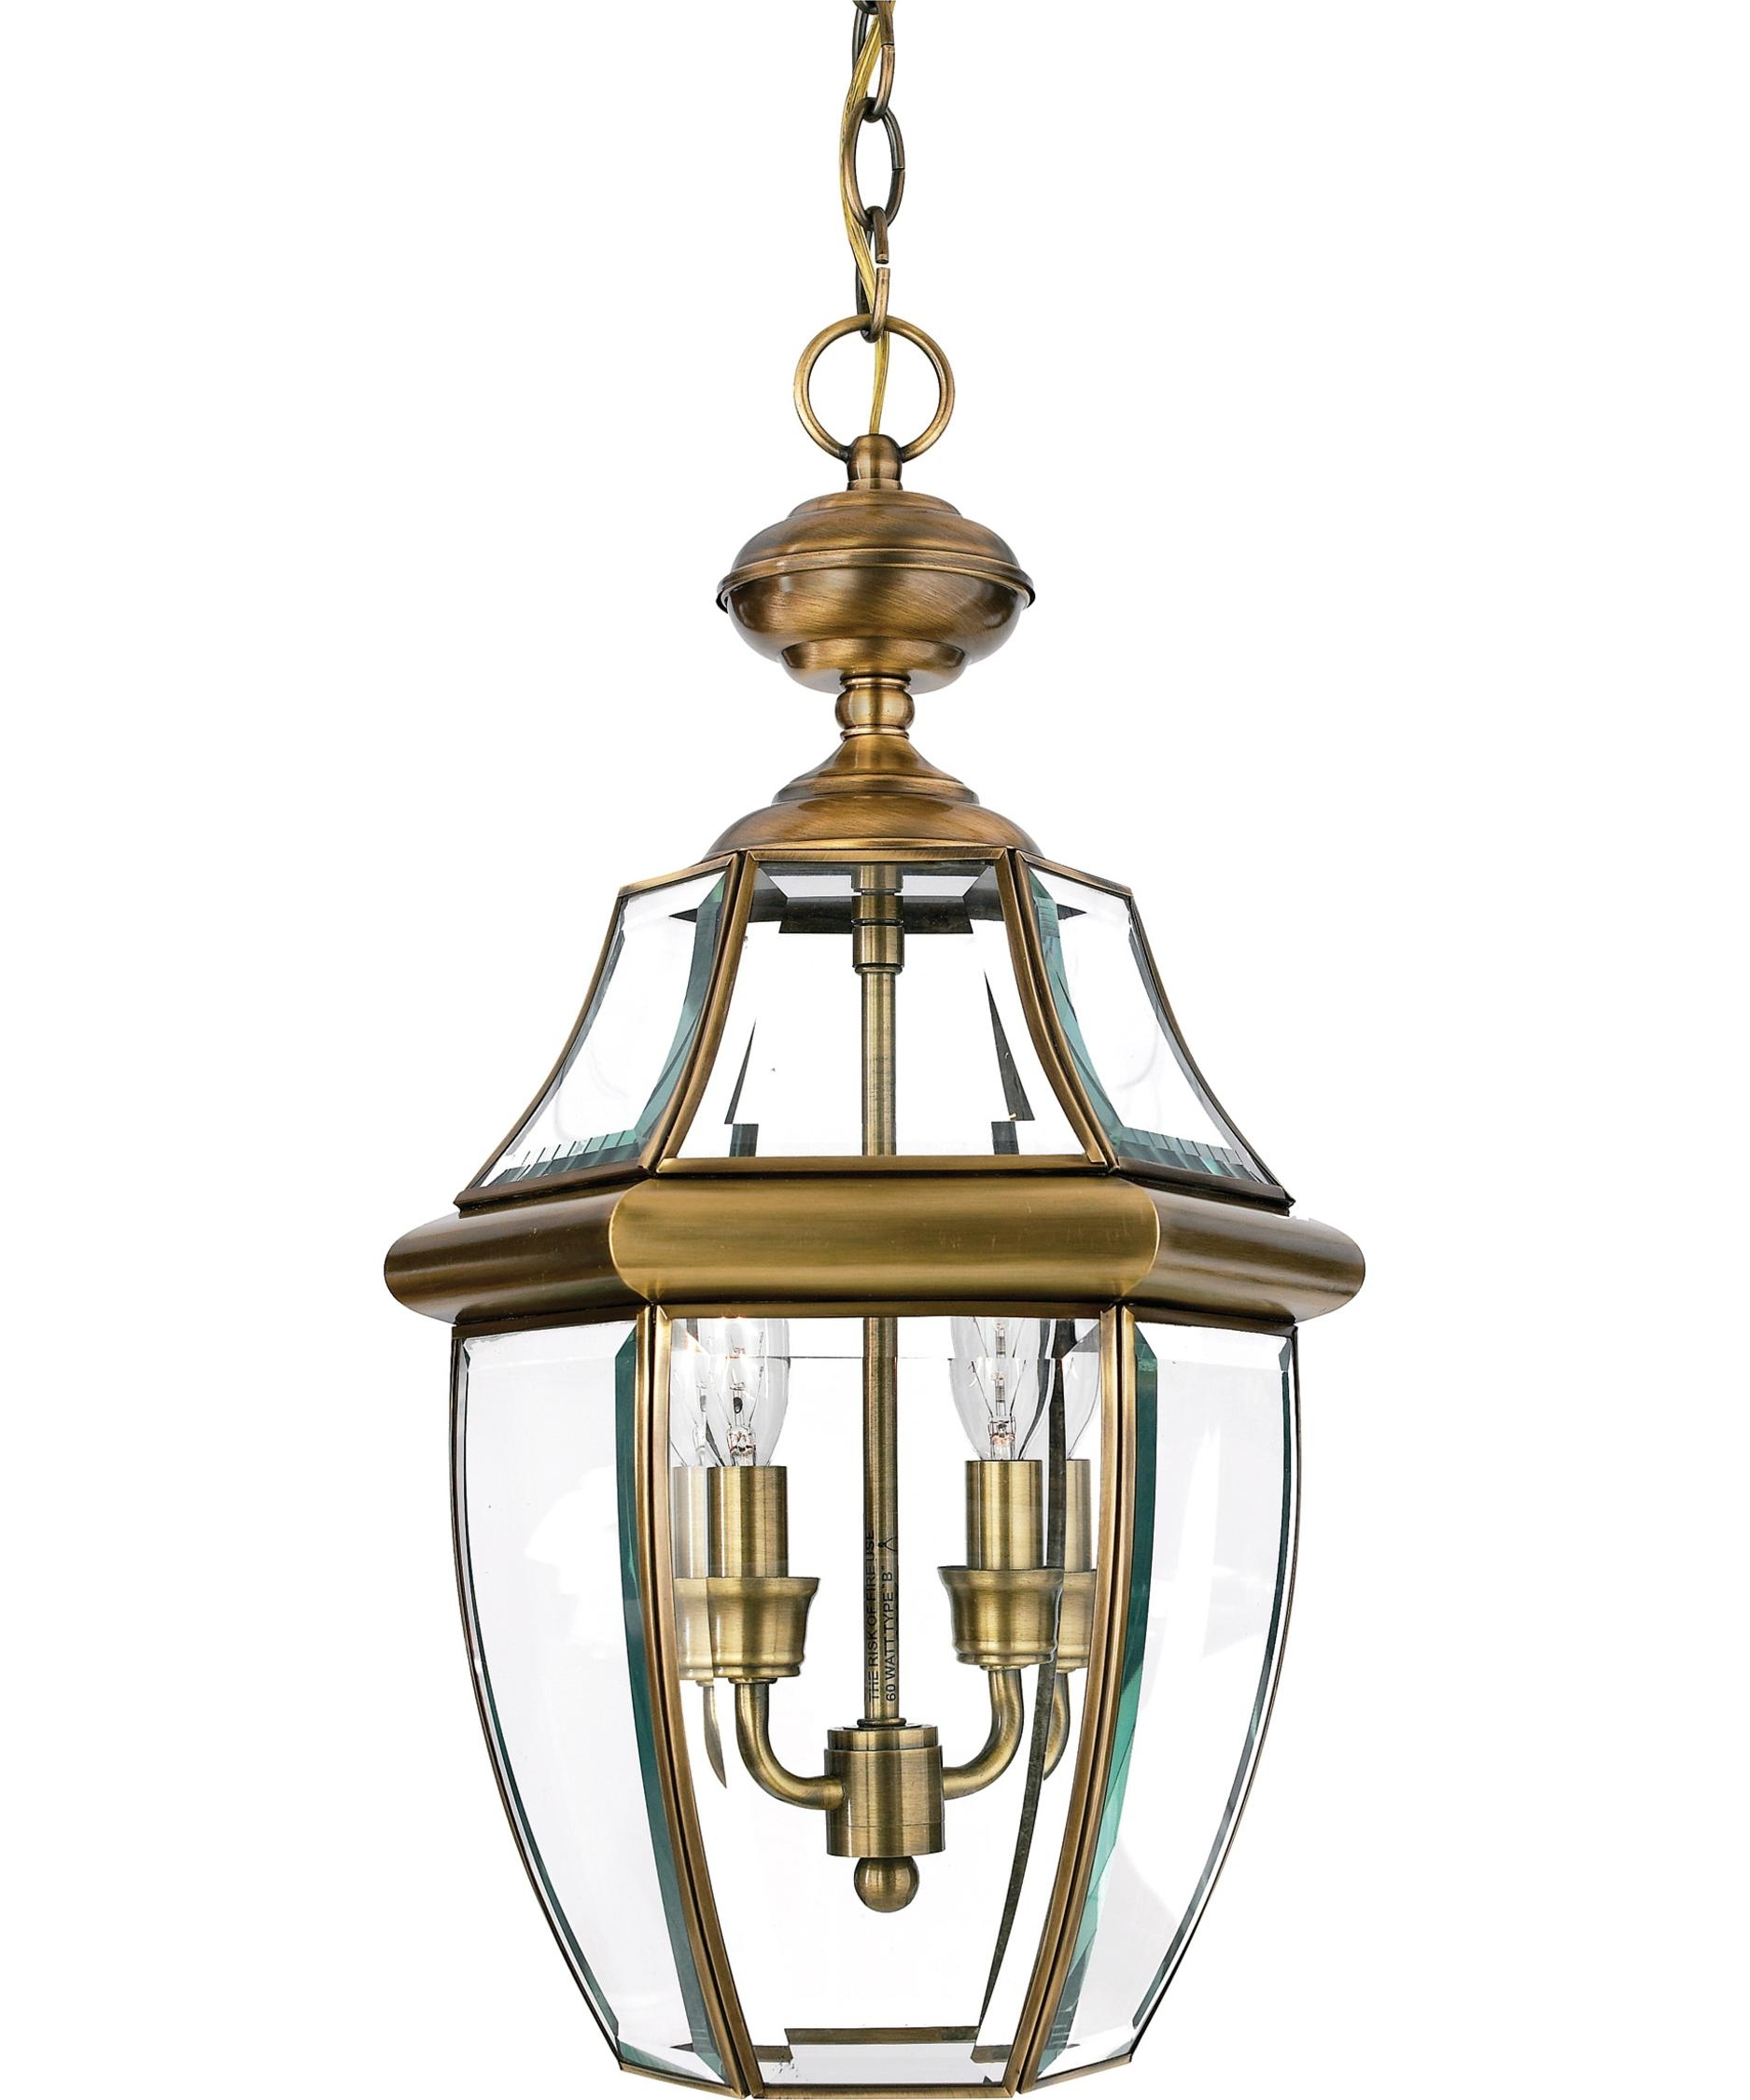 Inspiration about Quoizel Ny1178 Newbury 10 Inch Wide 2 Light Outdoor Hanging Lantern Intended For Outdoor Hanging Lights (#7 of 15)